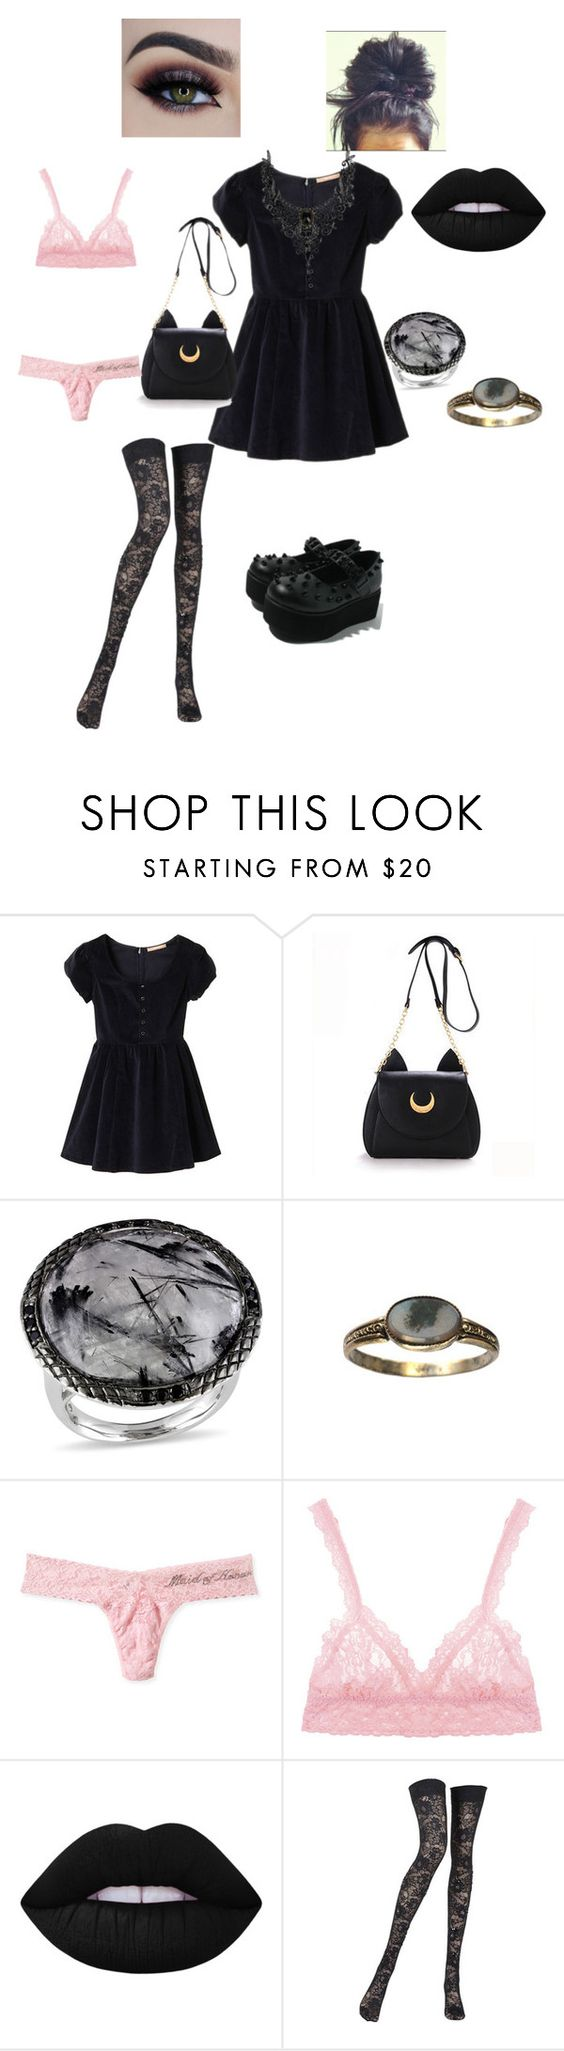 """""""Untitled #23"""" by deadlyangel ❤ liked on Polyvore featuring Ice, Hanky Panky, Lime Crime and Pierre Mantoux"""